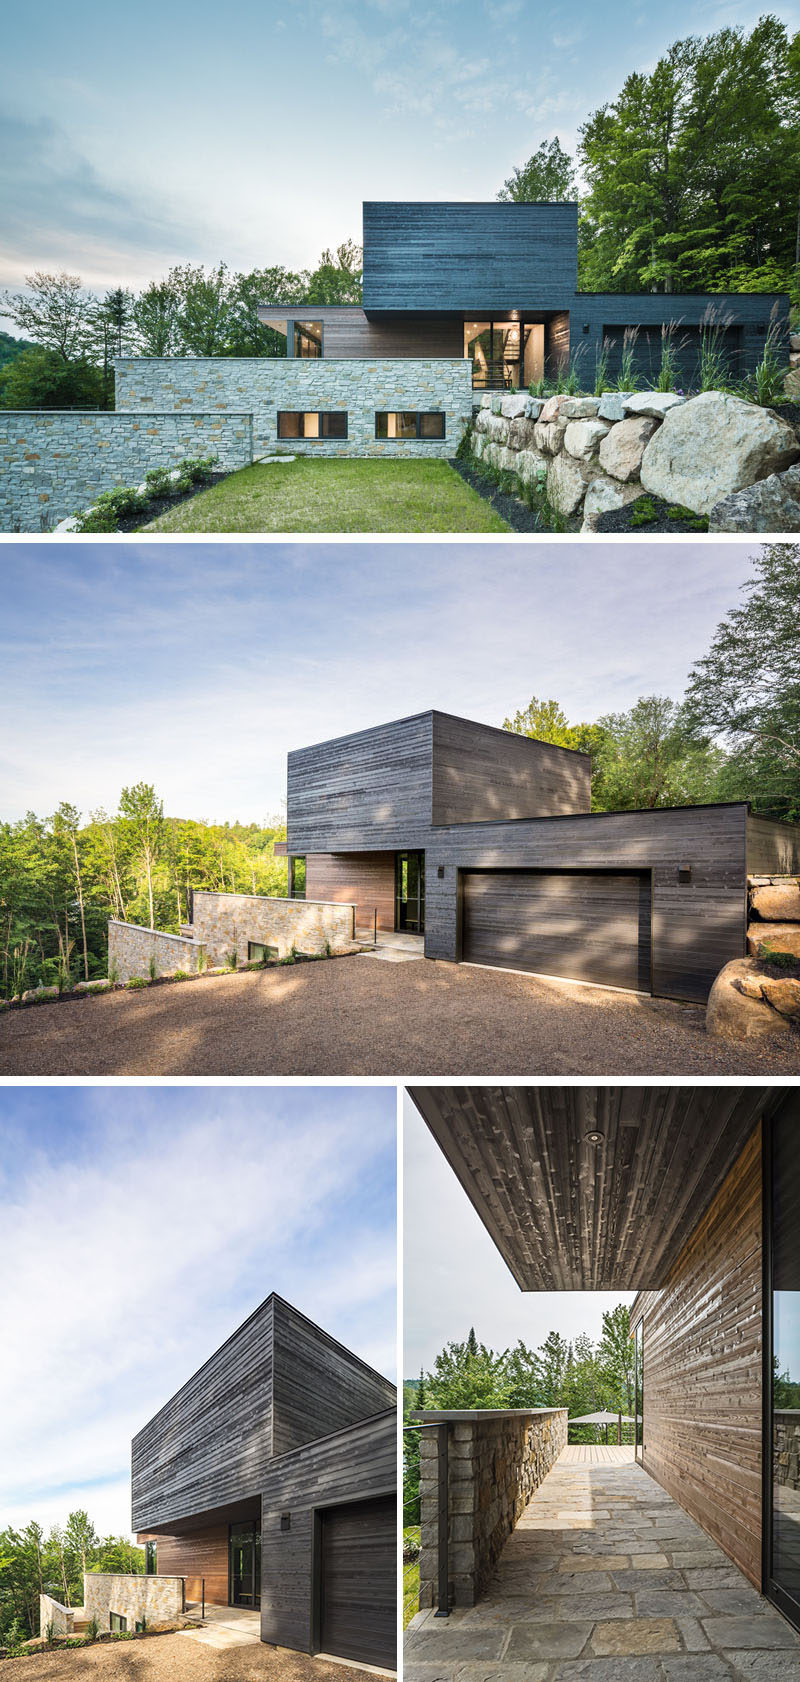 Light and dark wood have been used to separate the different areas of this home, with the dark wood section taking the form of a 'floating cube'.